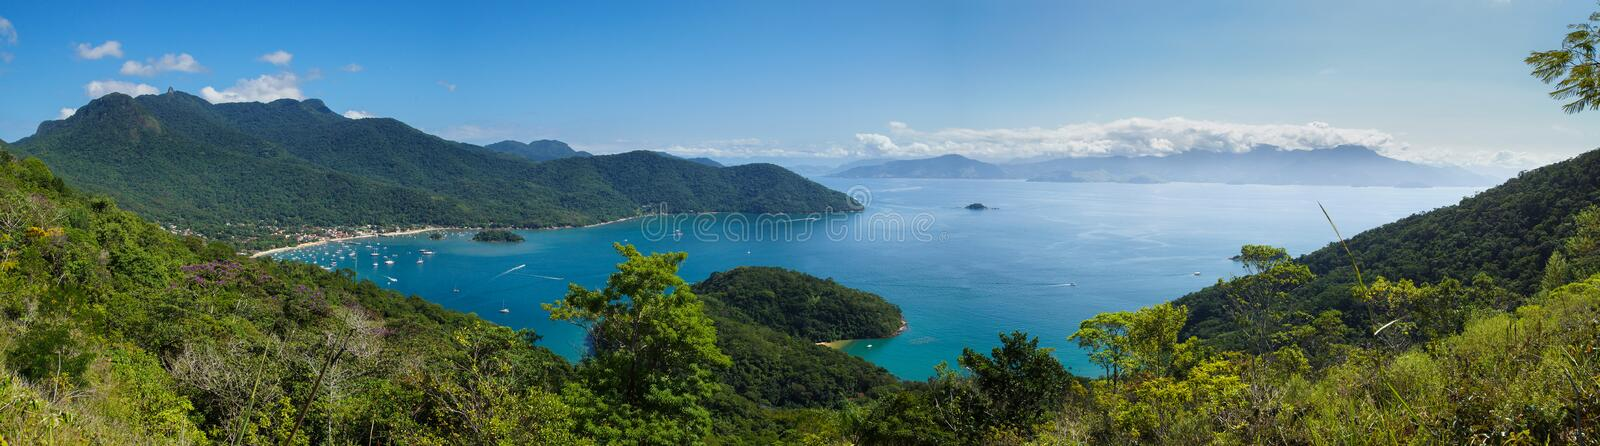 Ilha Grande, Brazil. Panoramic image of a beautiful bay on the island of Ilha Grande, Brazil stock photos